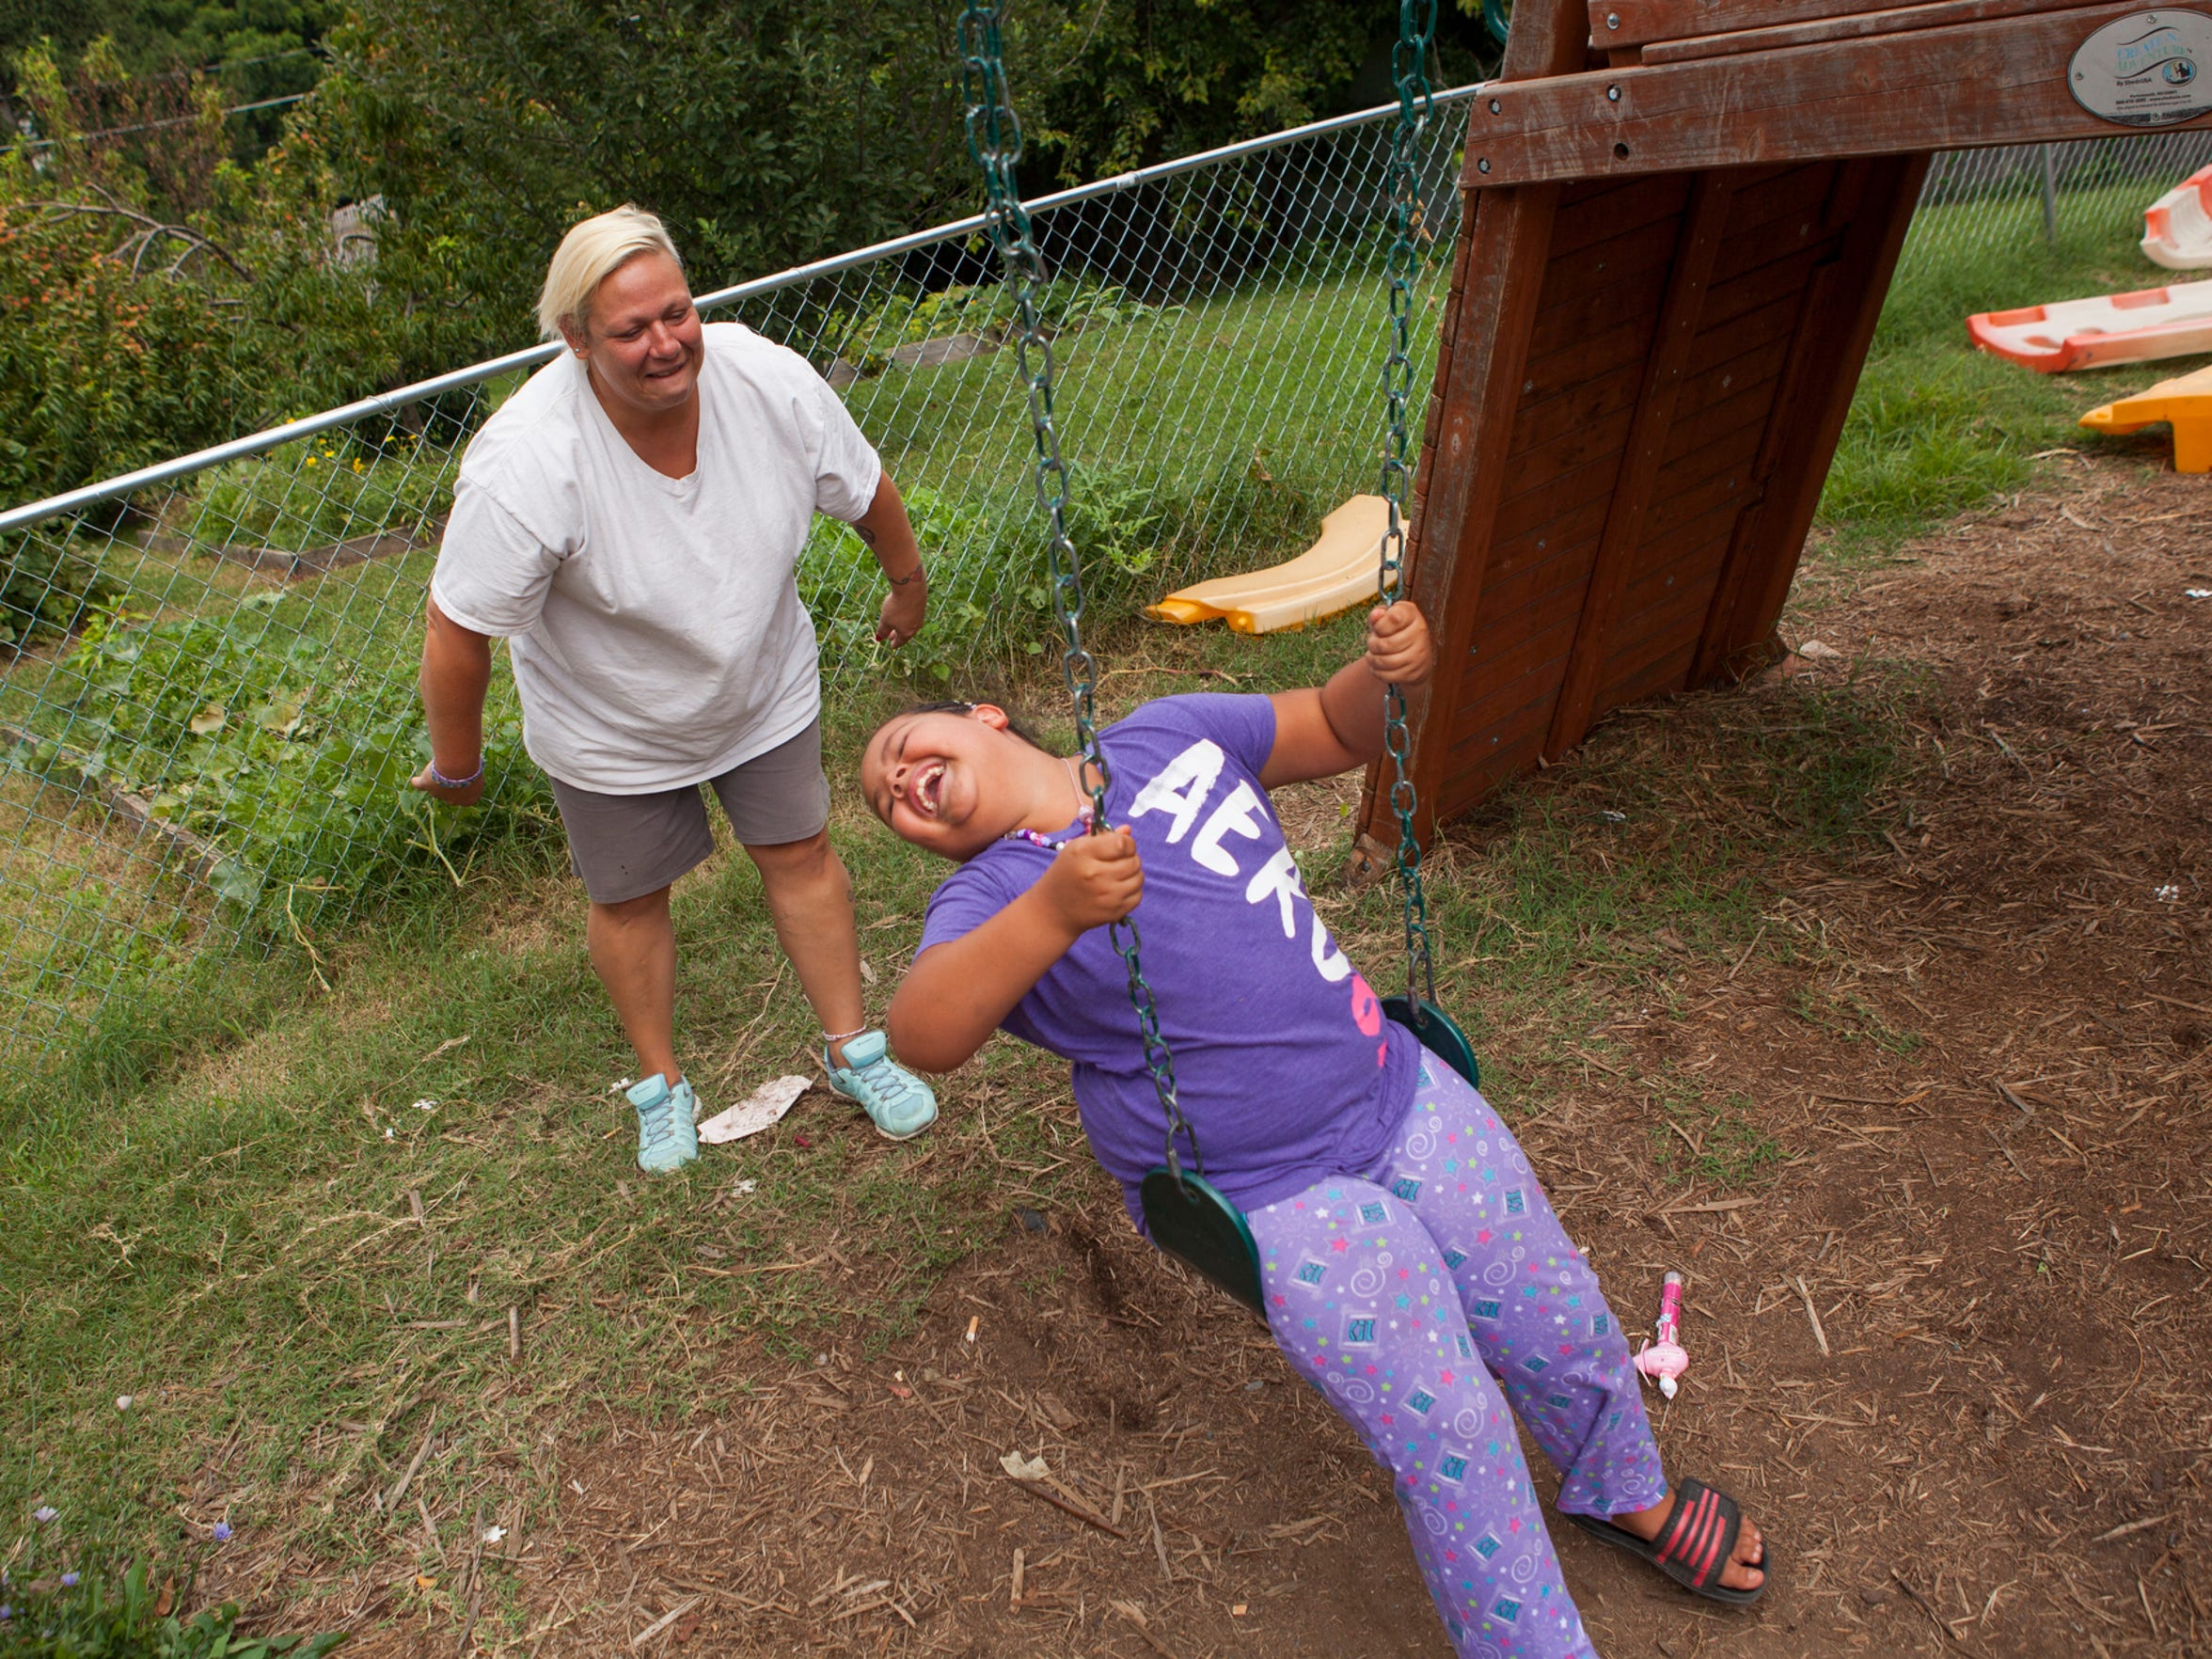 Constance Nettles pushes her daughter, Olivia Nettles, 7, on a swing outside The Valley Mission on Aug. 8, 2015. Constance is unable to work because of a physical disability and the family has been living on one income.